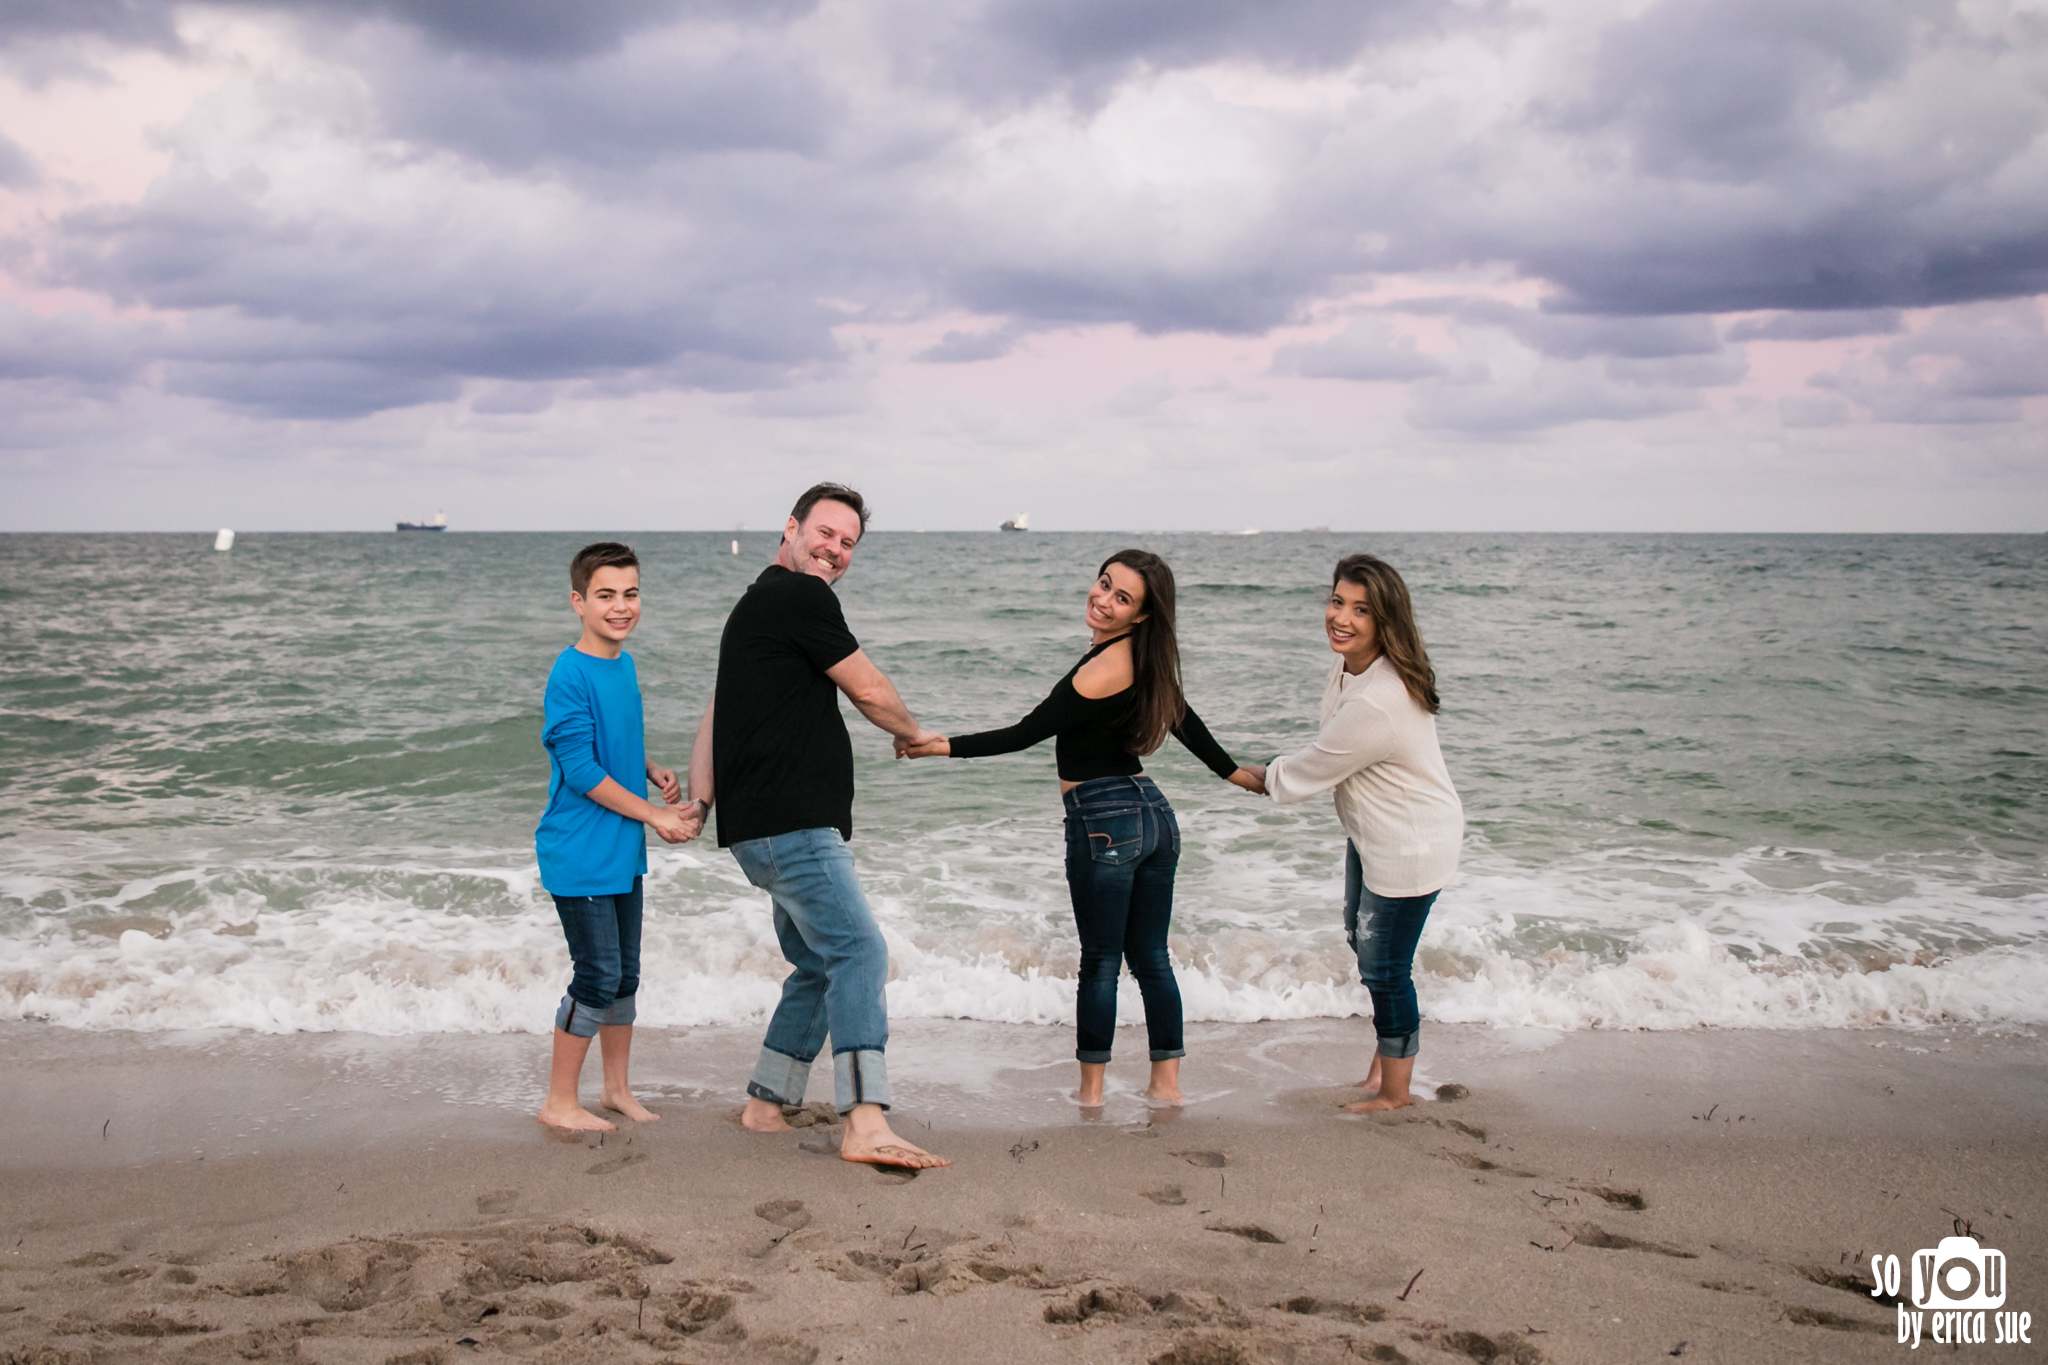 bar-mitzvay-pre-shoot-family-photography-so-you-by-erica-sue-ft-lauderdale-fl-florida-beach-9347.jpg